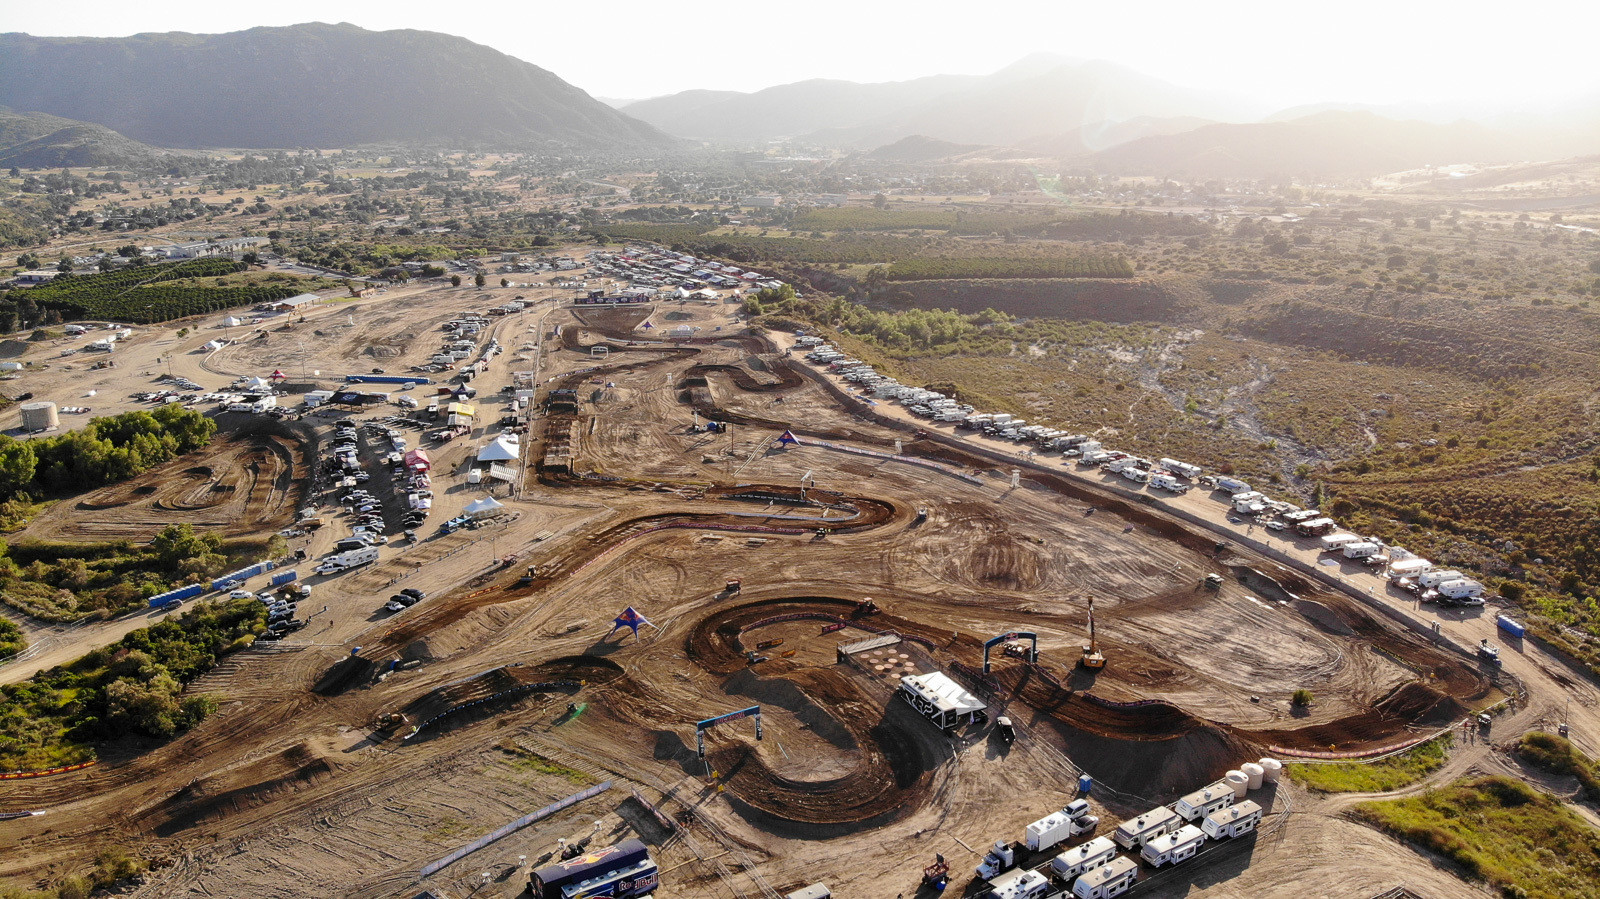 Overview of Fox Raceway on Friday afternoon, before the fans arrived.